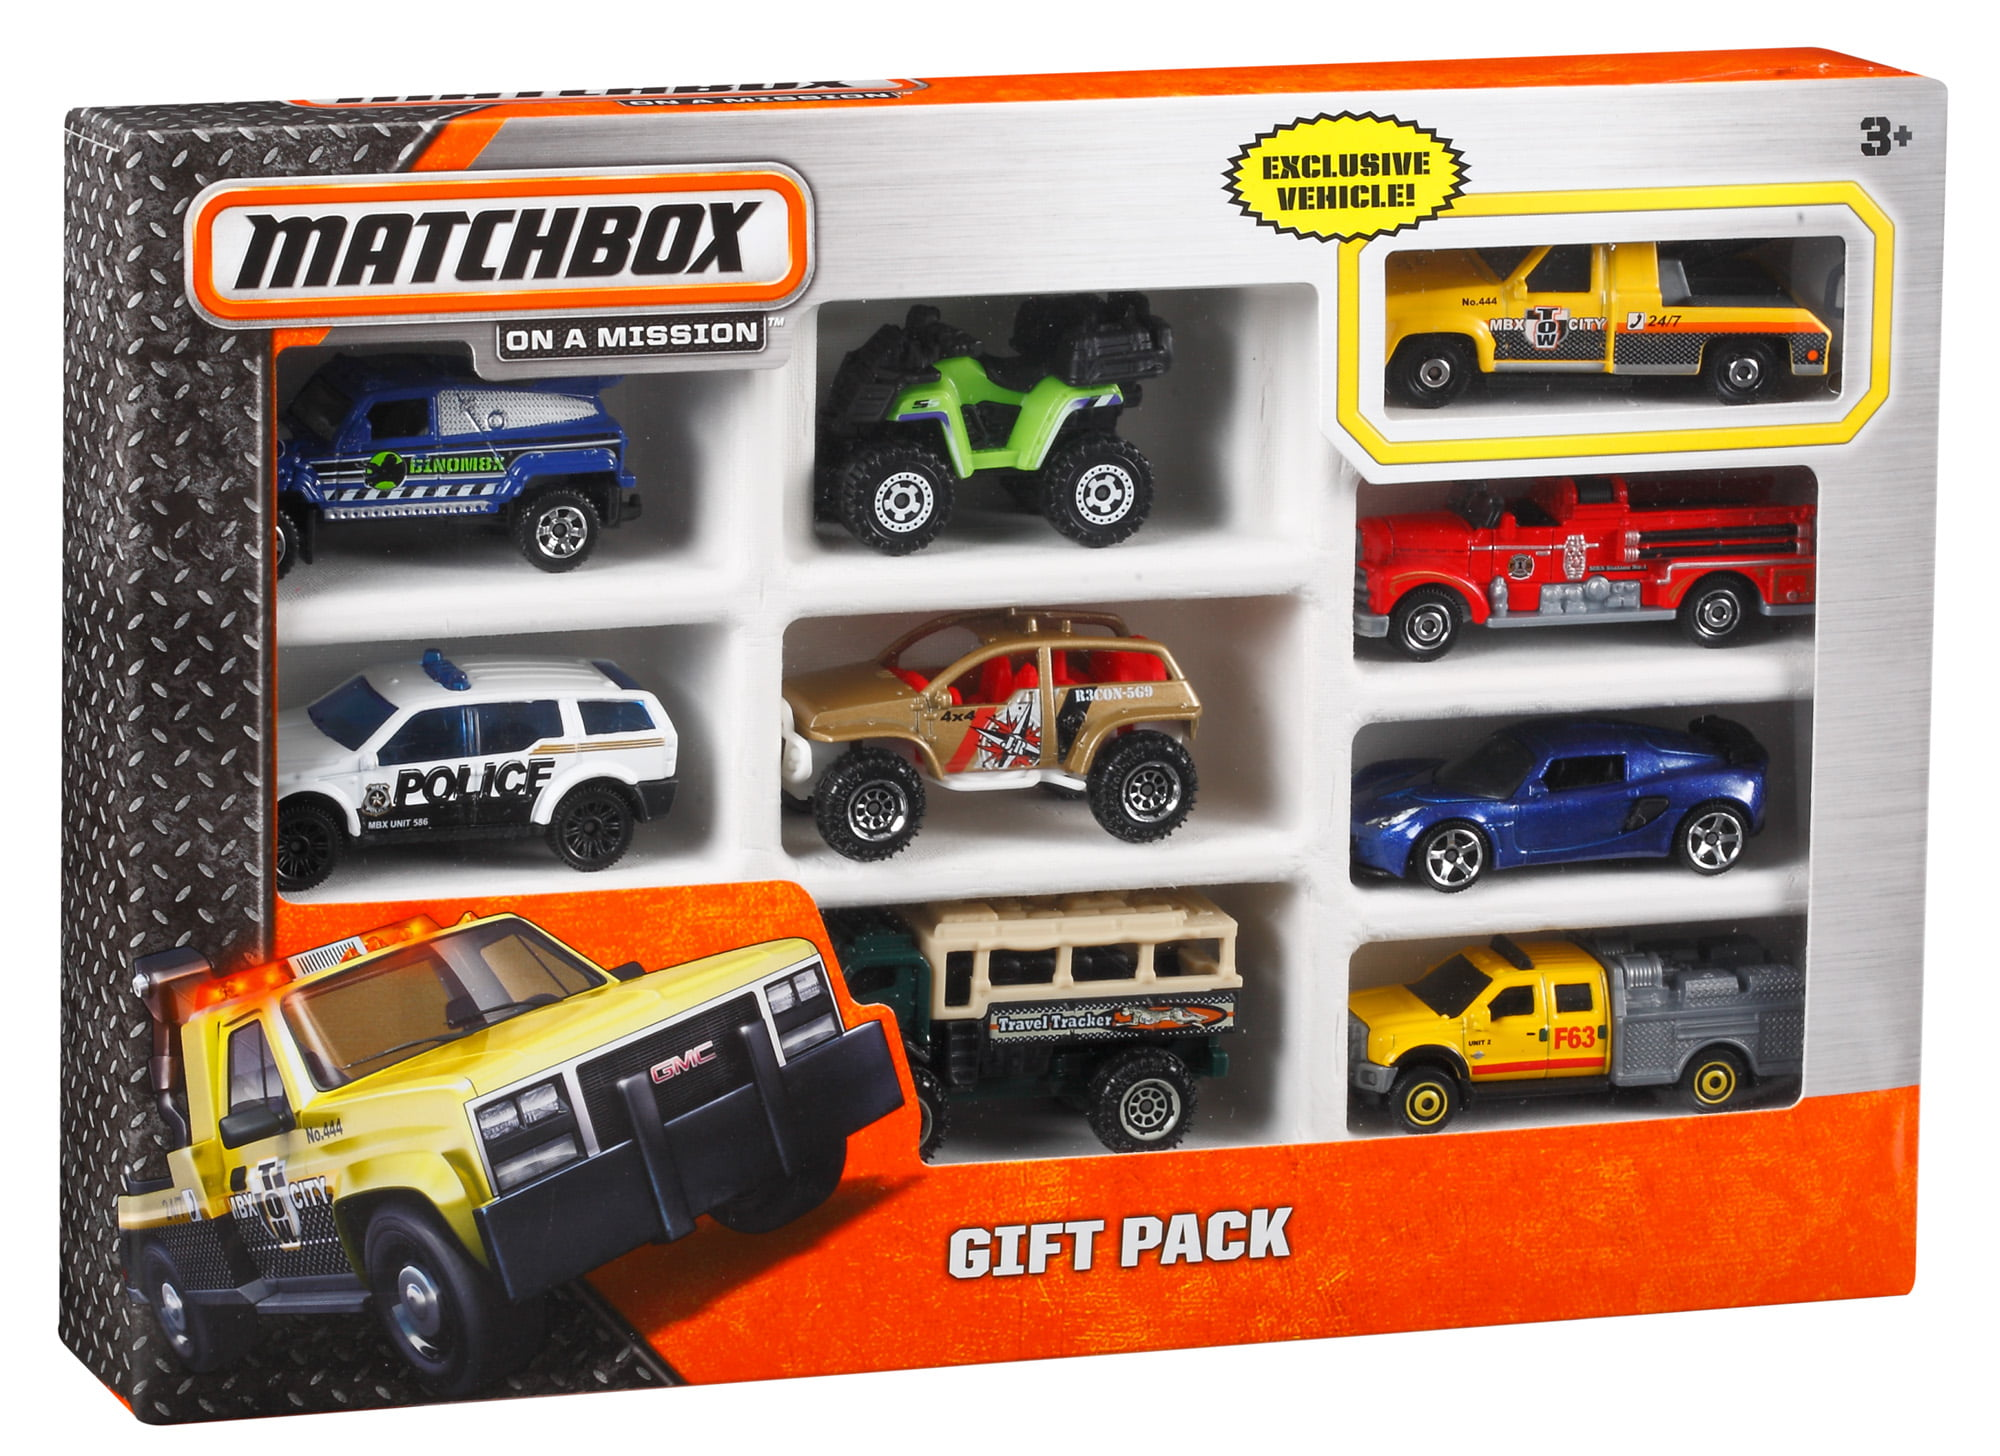 match box Matchbox collectibles - 1:43 scale - cars and semi trucks.